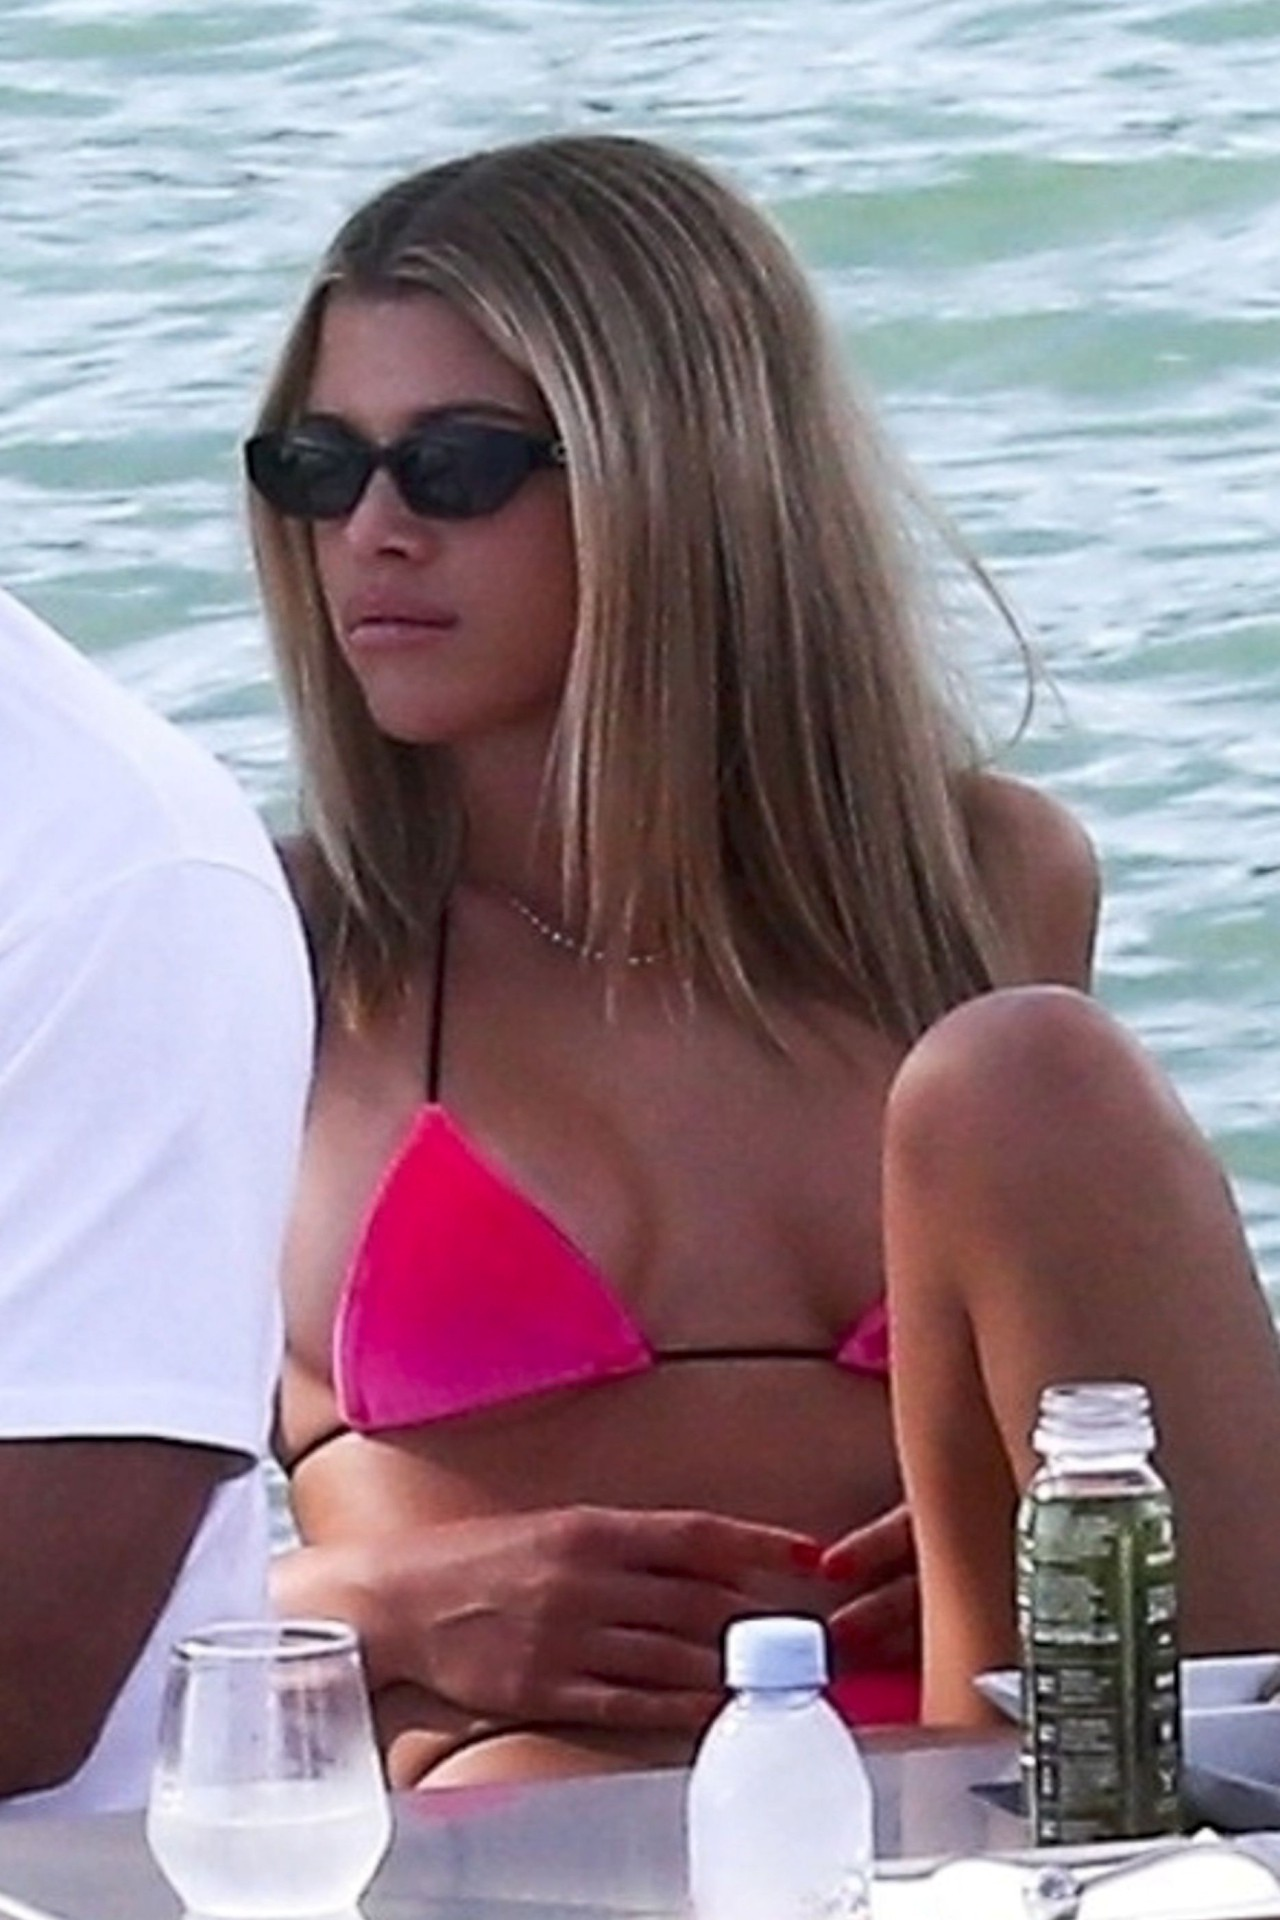 Sofia Richie Sexy Bikini Boobs